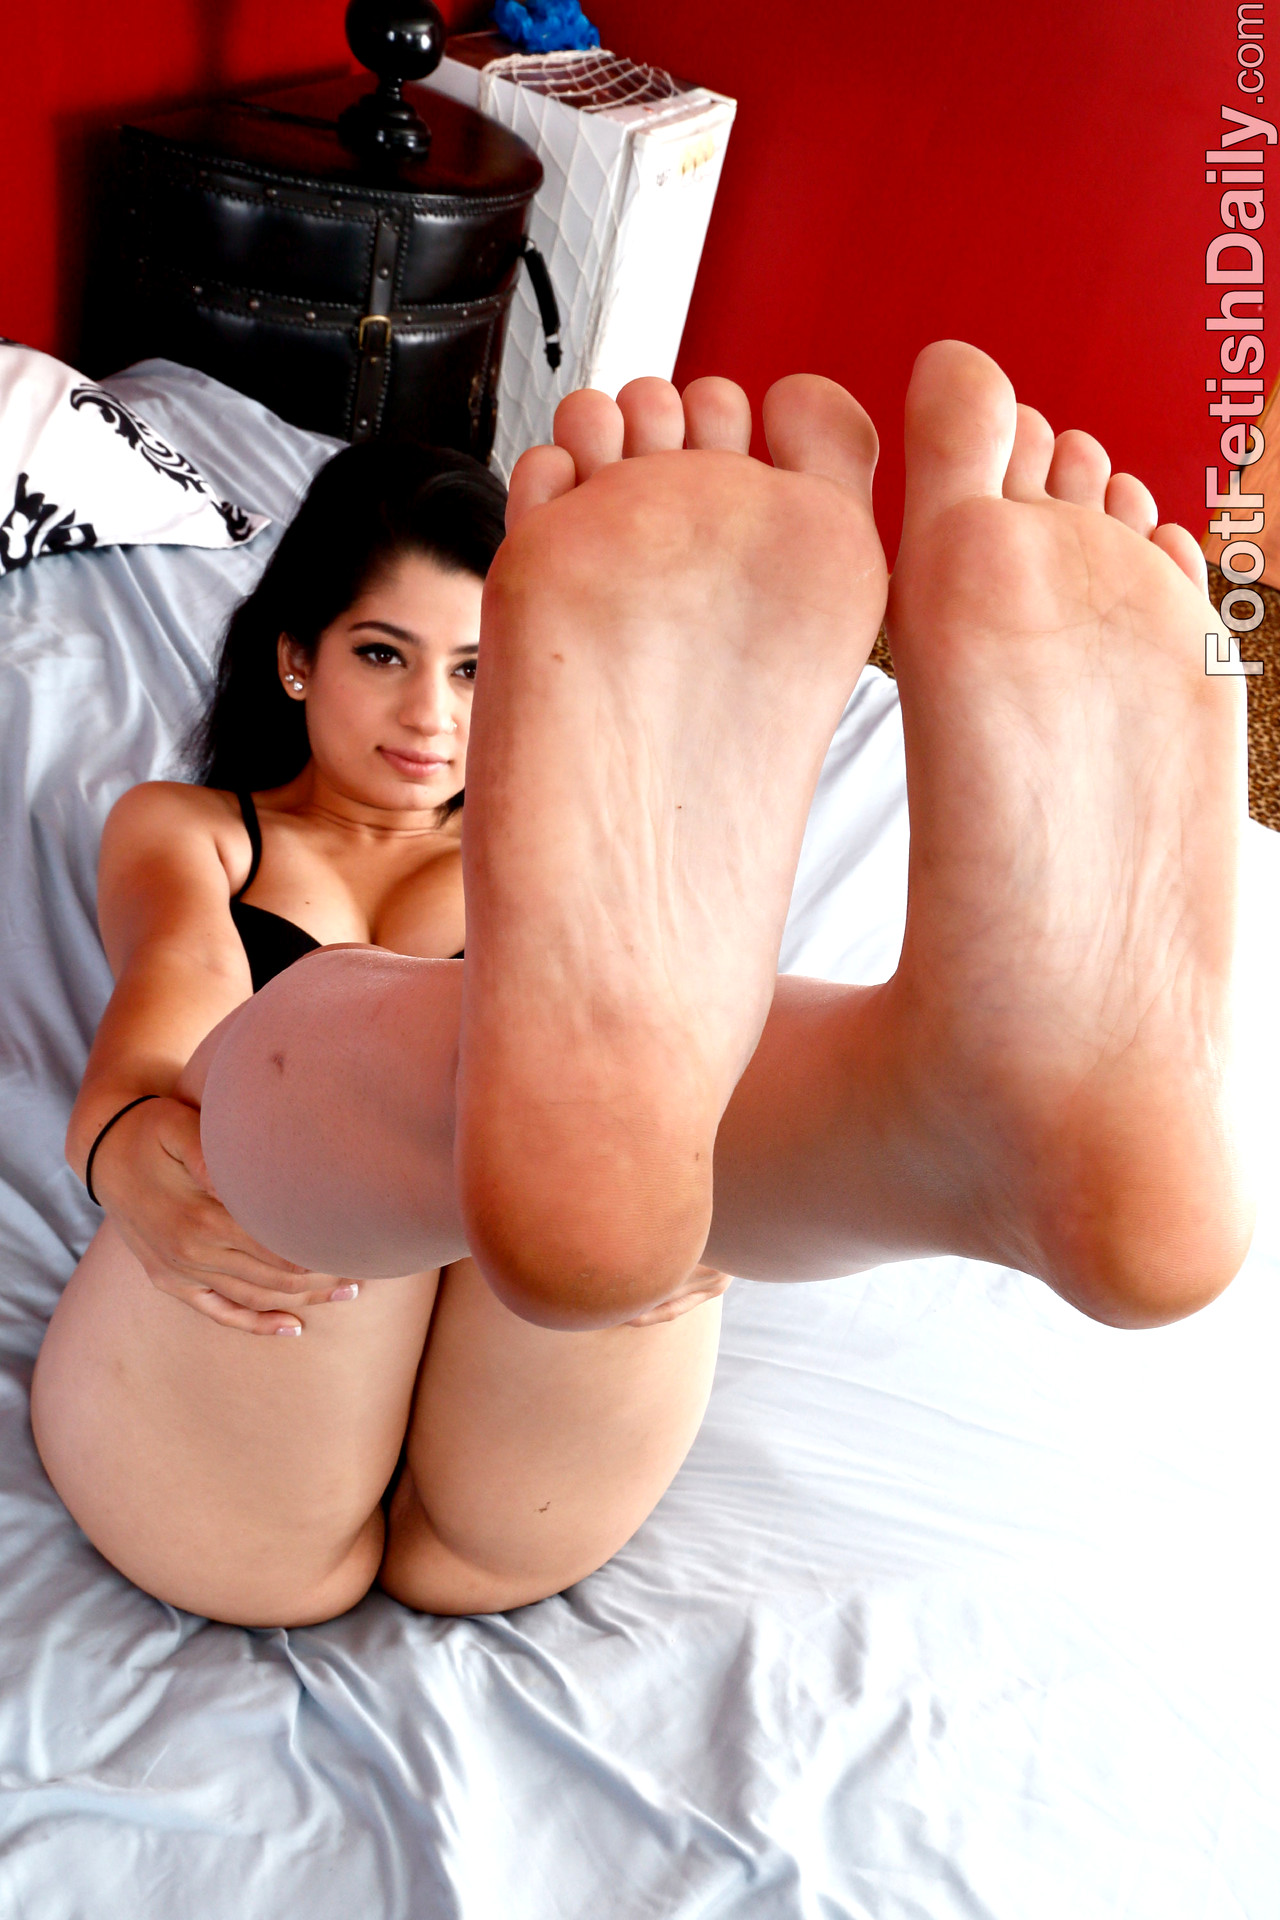 Babe Today Foot Fetish Daily Nadia Ali Rated X Feet Area -5004